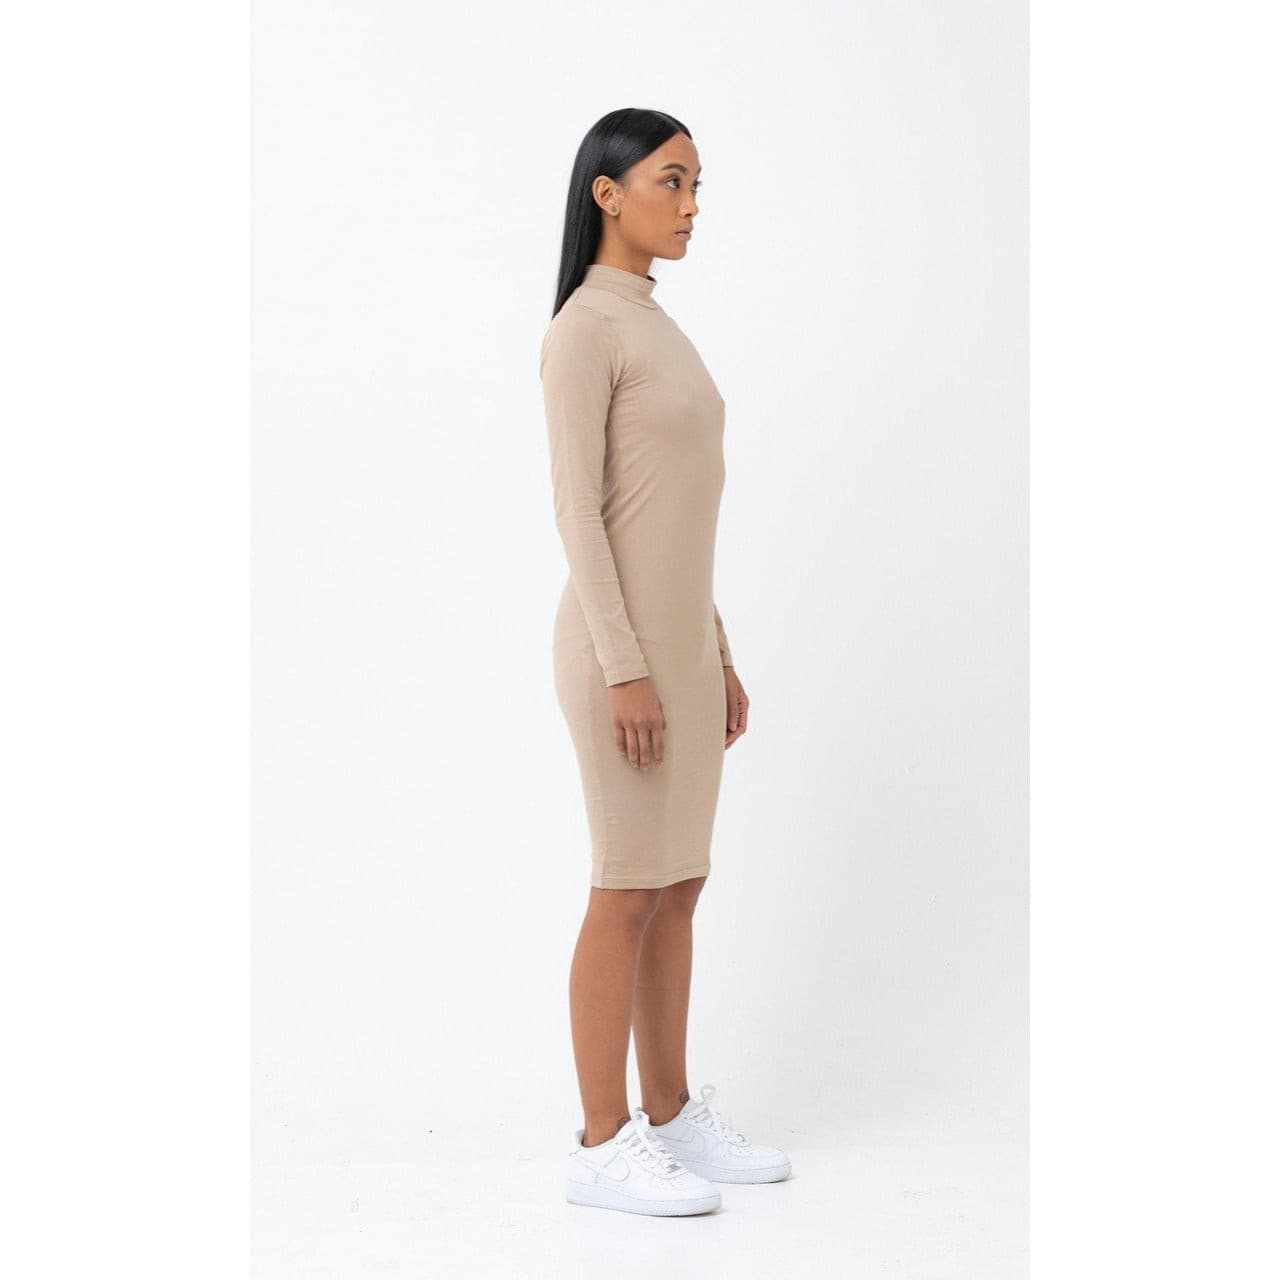 The Mock Neck Bodycon Dress in Nude